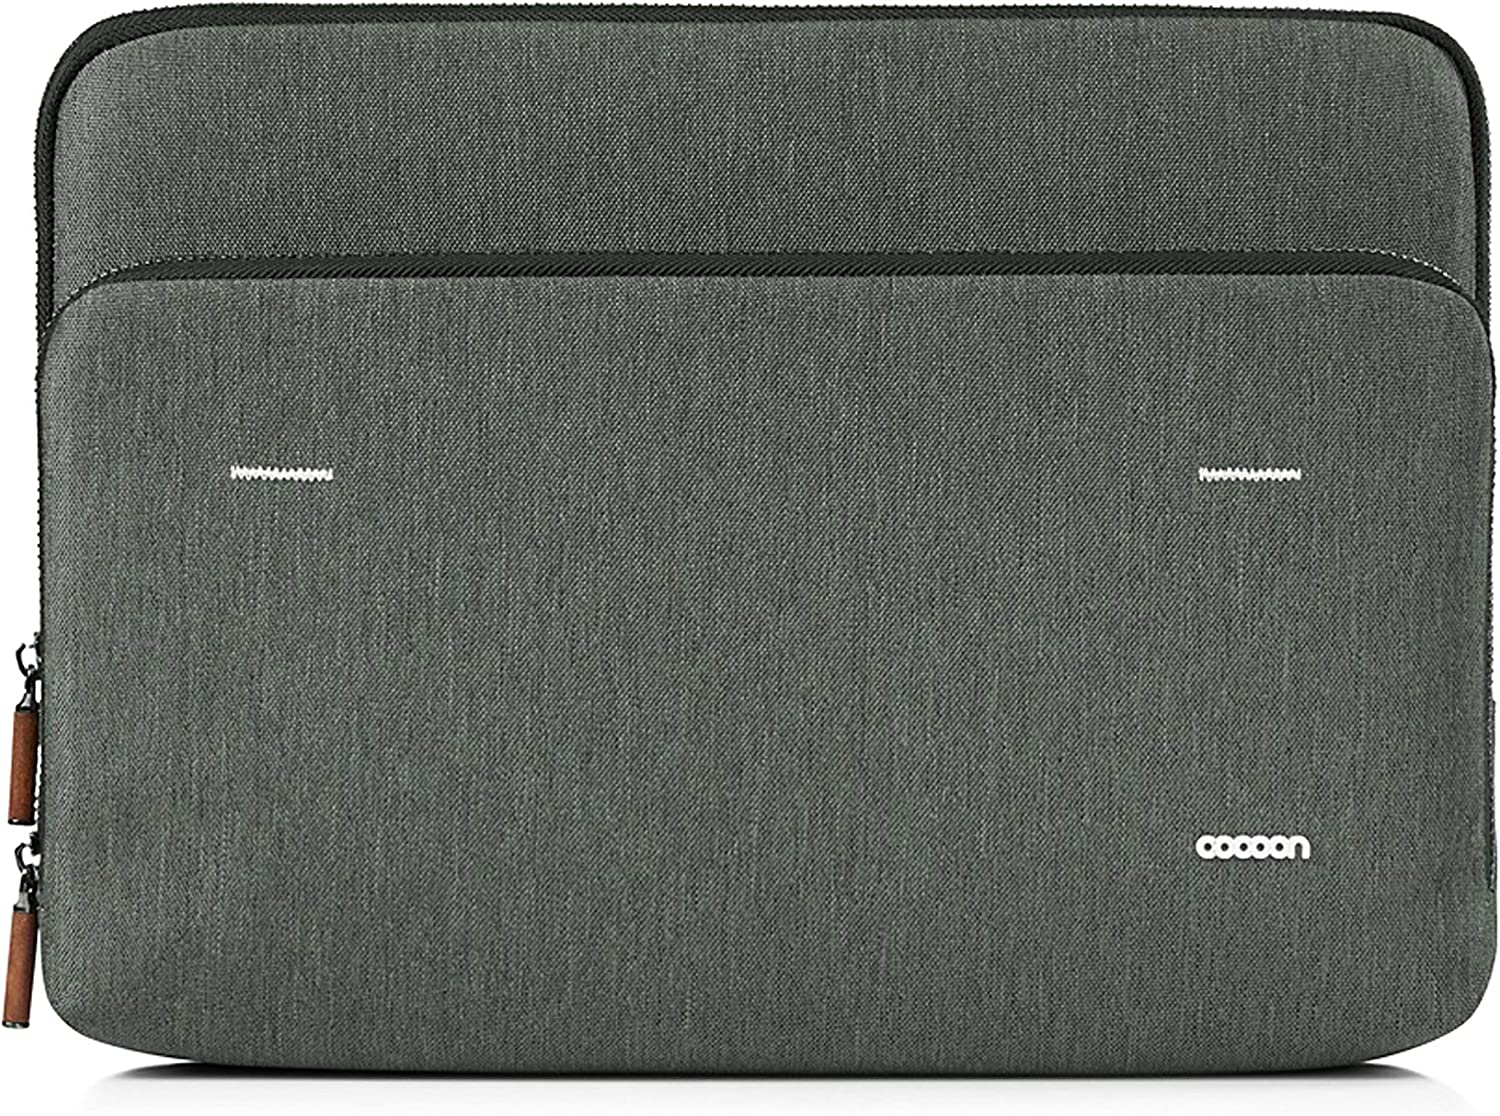 "Cocoon MCS2301GF/V2 Graphite 13"" Sleeve with Built-in Grid-IT! Accessory Organizer (Graphite Gray)"